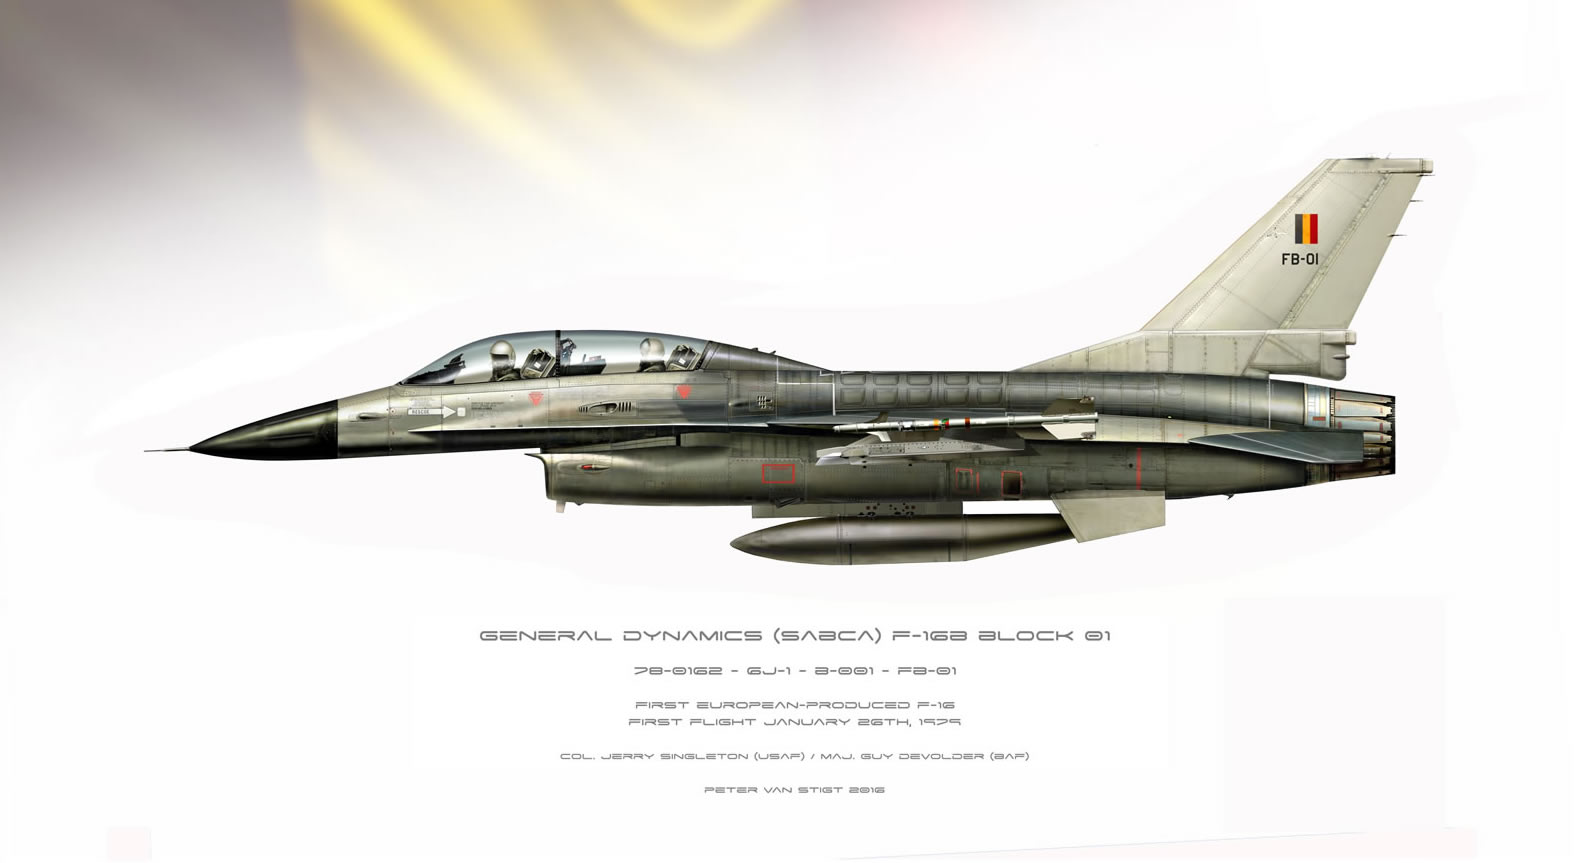 Belgian Air Force F-16B Profile FB-01